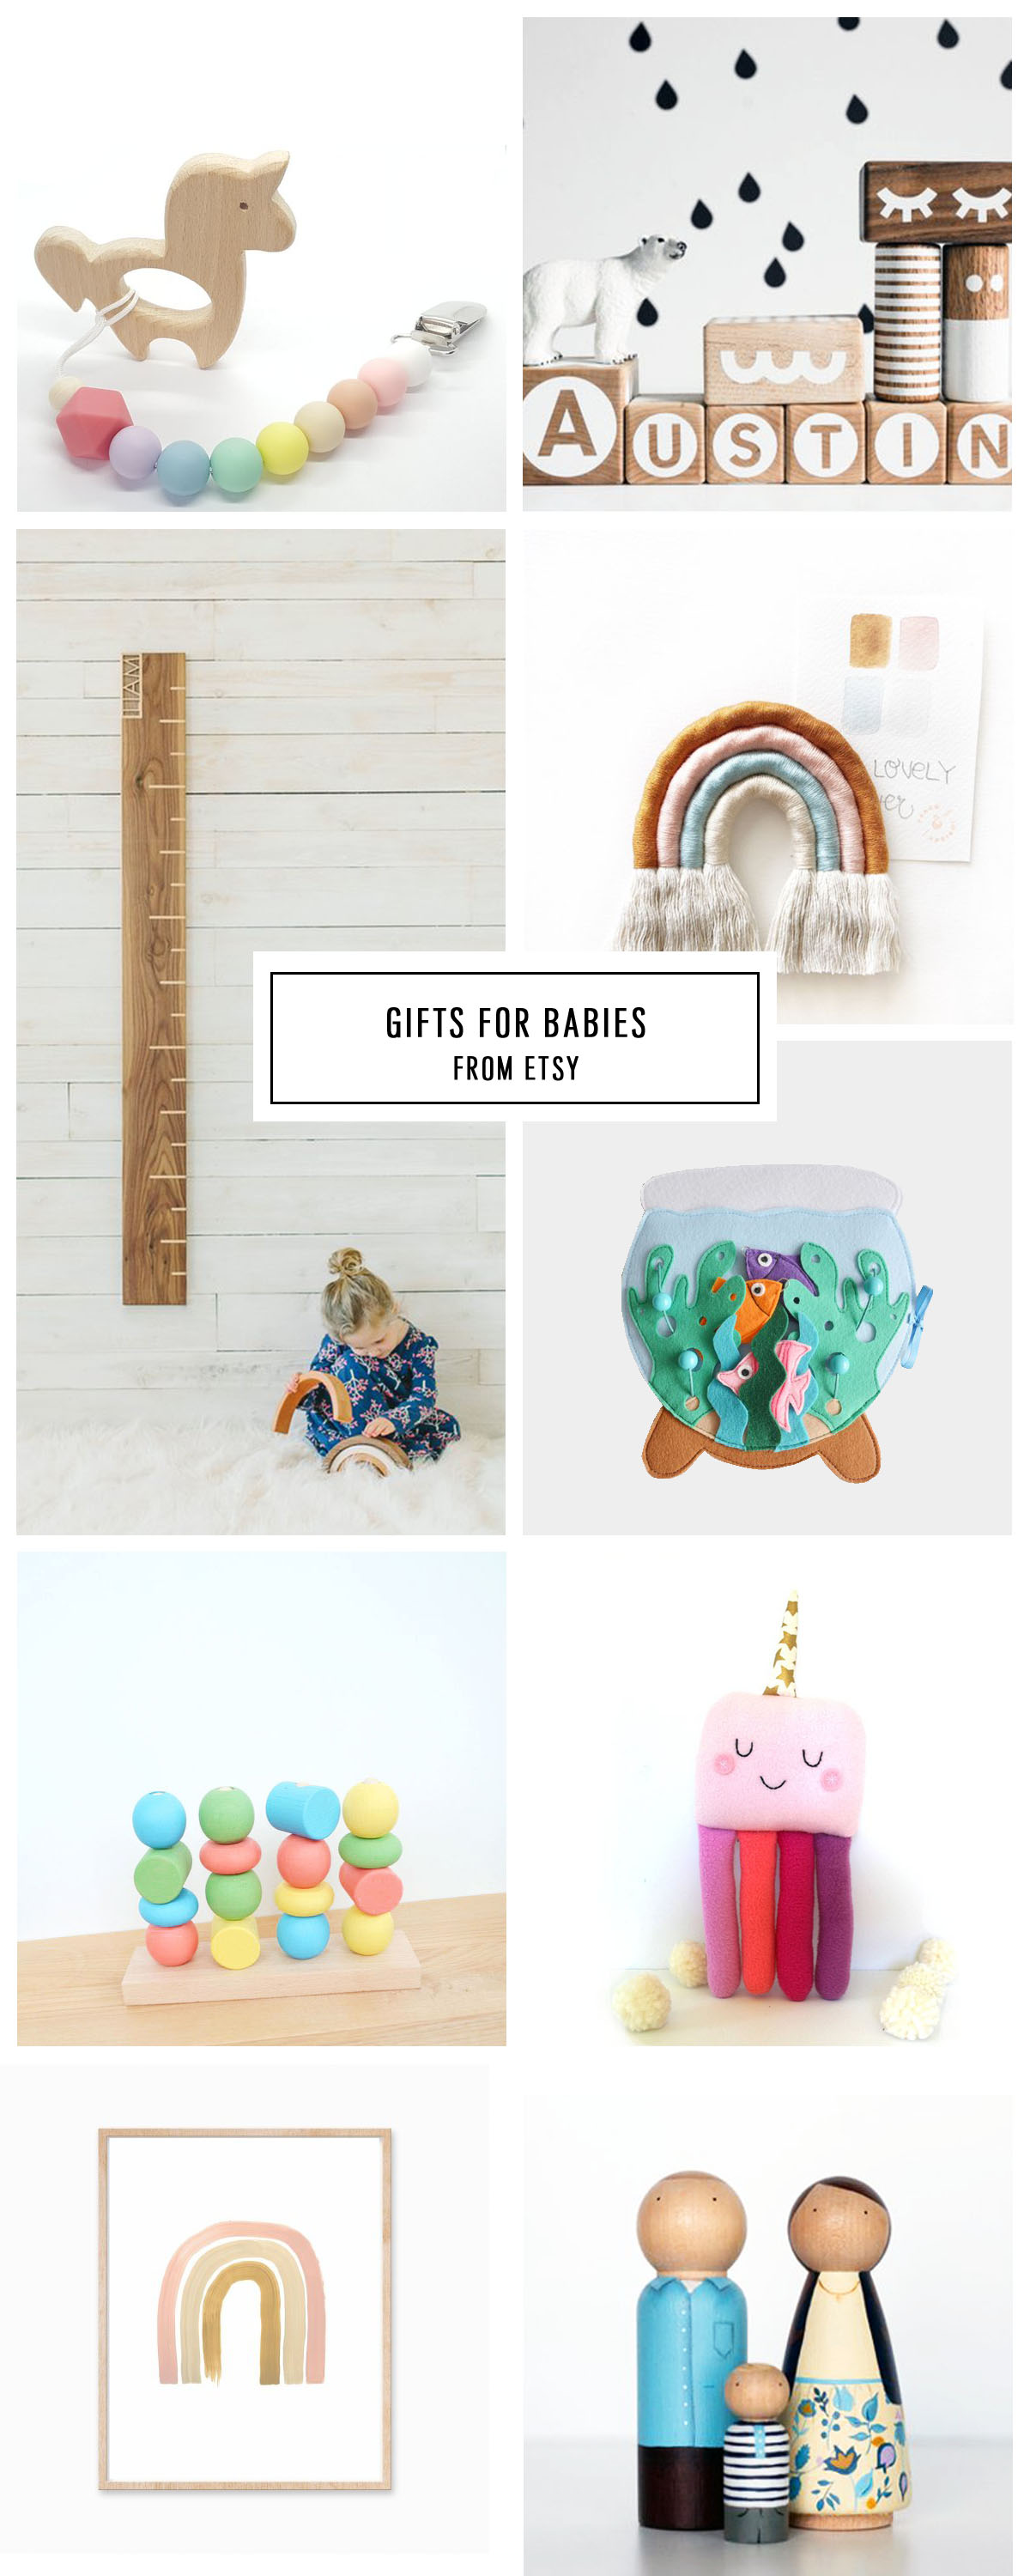 COMPLETE ETSY GIFT GUIDE FOR BABIES UNDER $75 by Houston lifestyle blogger Ashley Rose of Sugar and Cloth -- #giftguide #christmas #entertaining #holidaygifts #presents